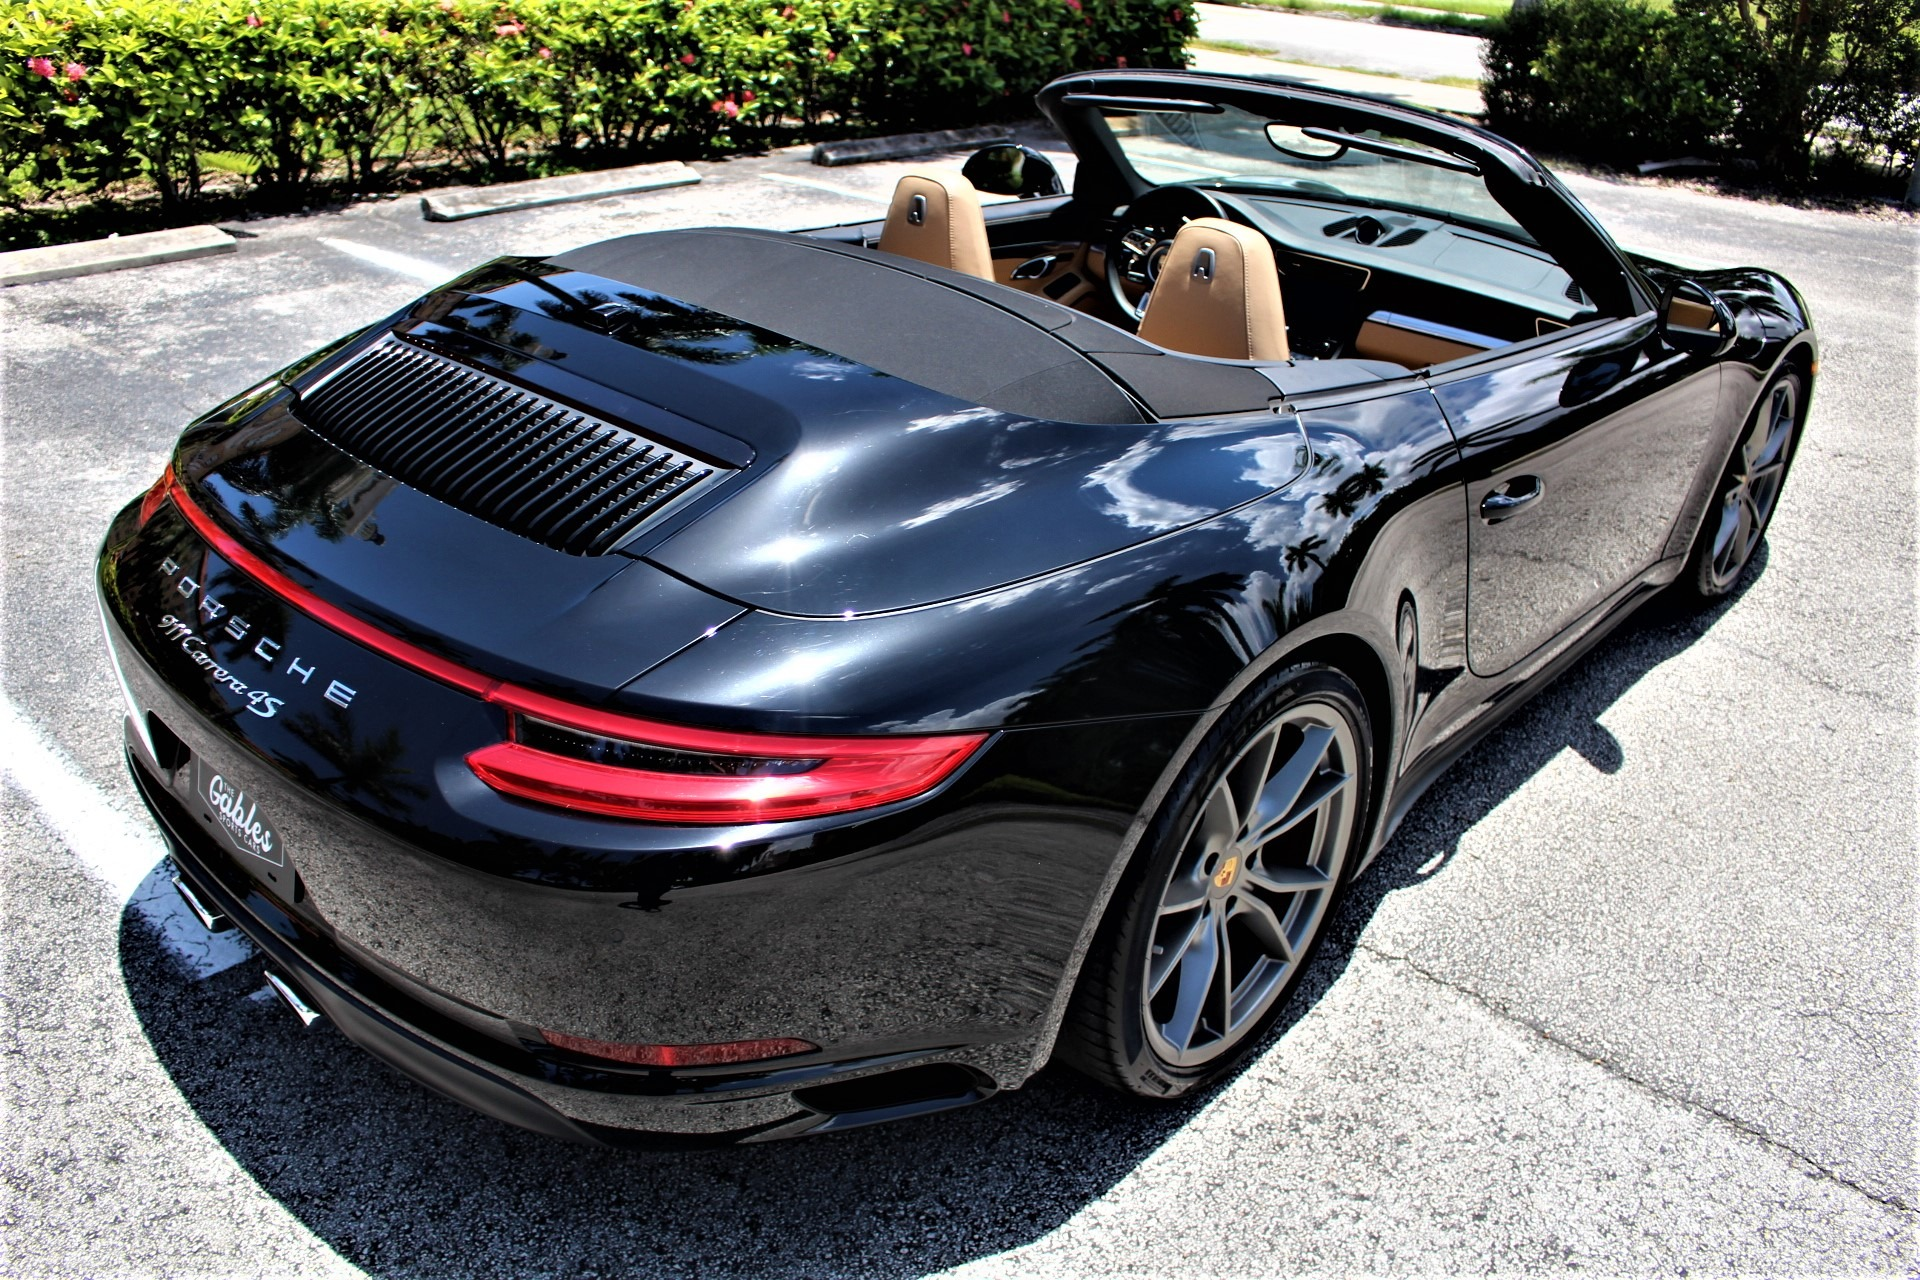 Used 2017 Porsche 911 Carrera 4S for sale Sold at The Gables Sports Cars in Miami FL 33146 3